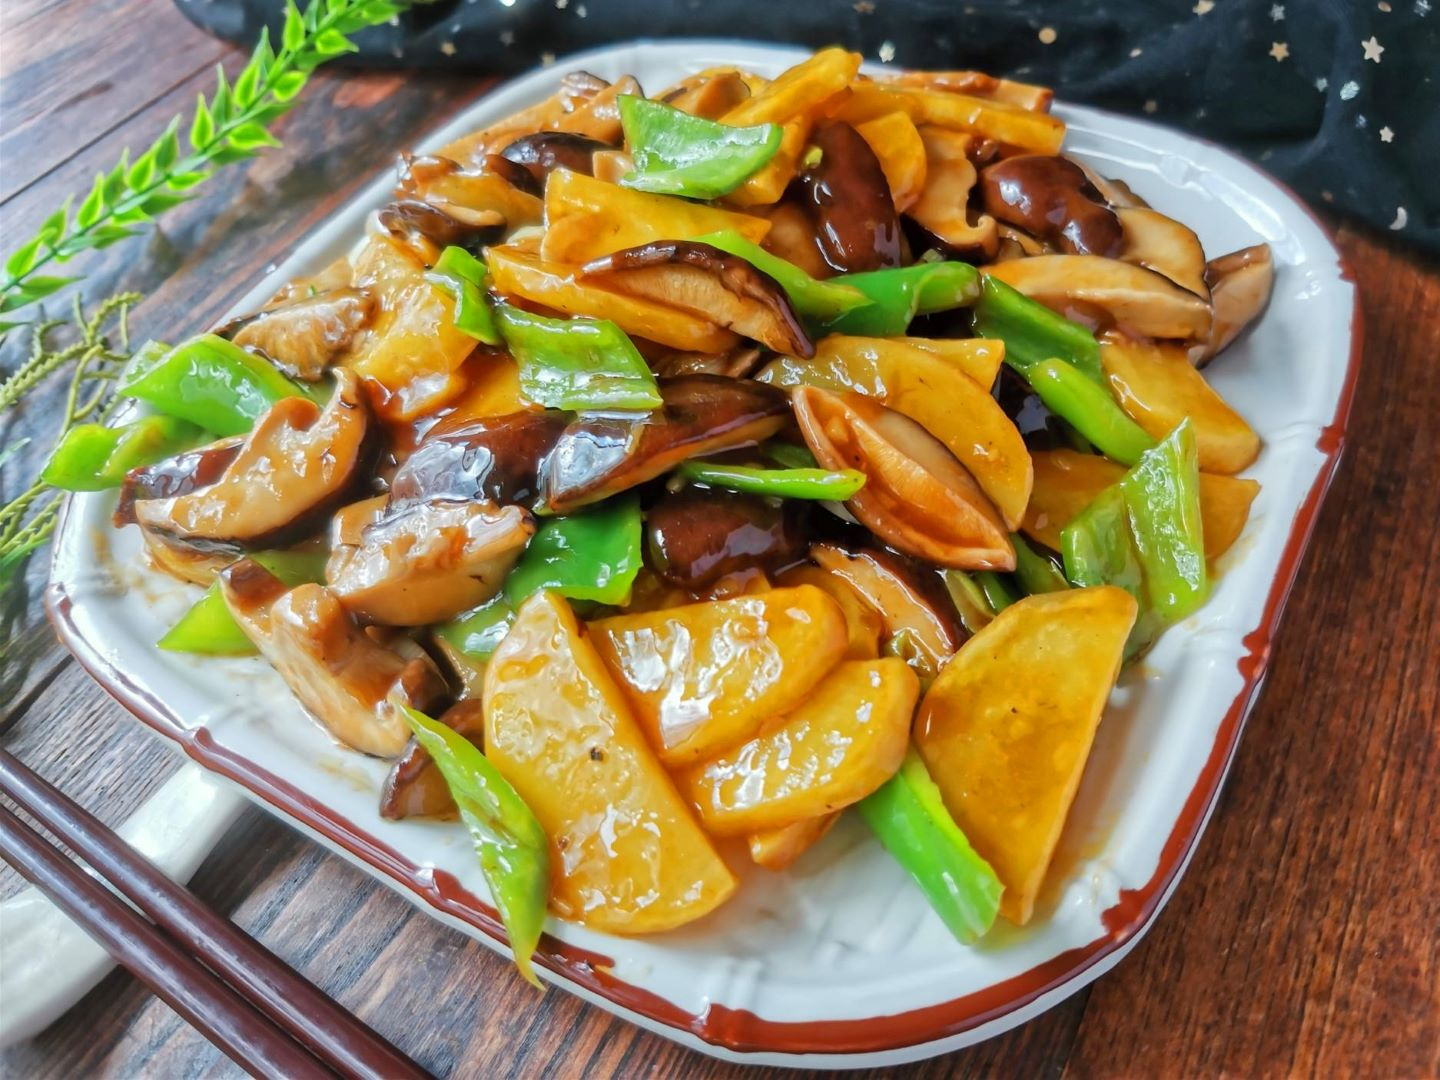 Braised potatoes with mushrooms and green paperers